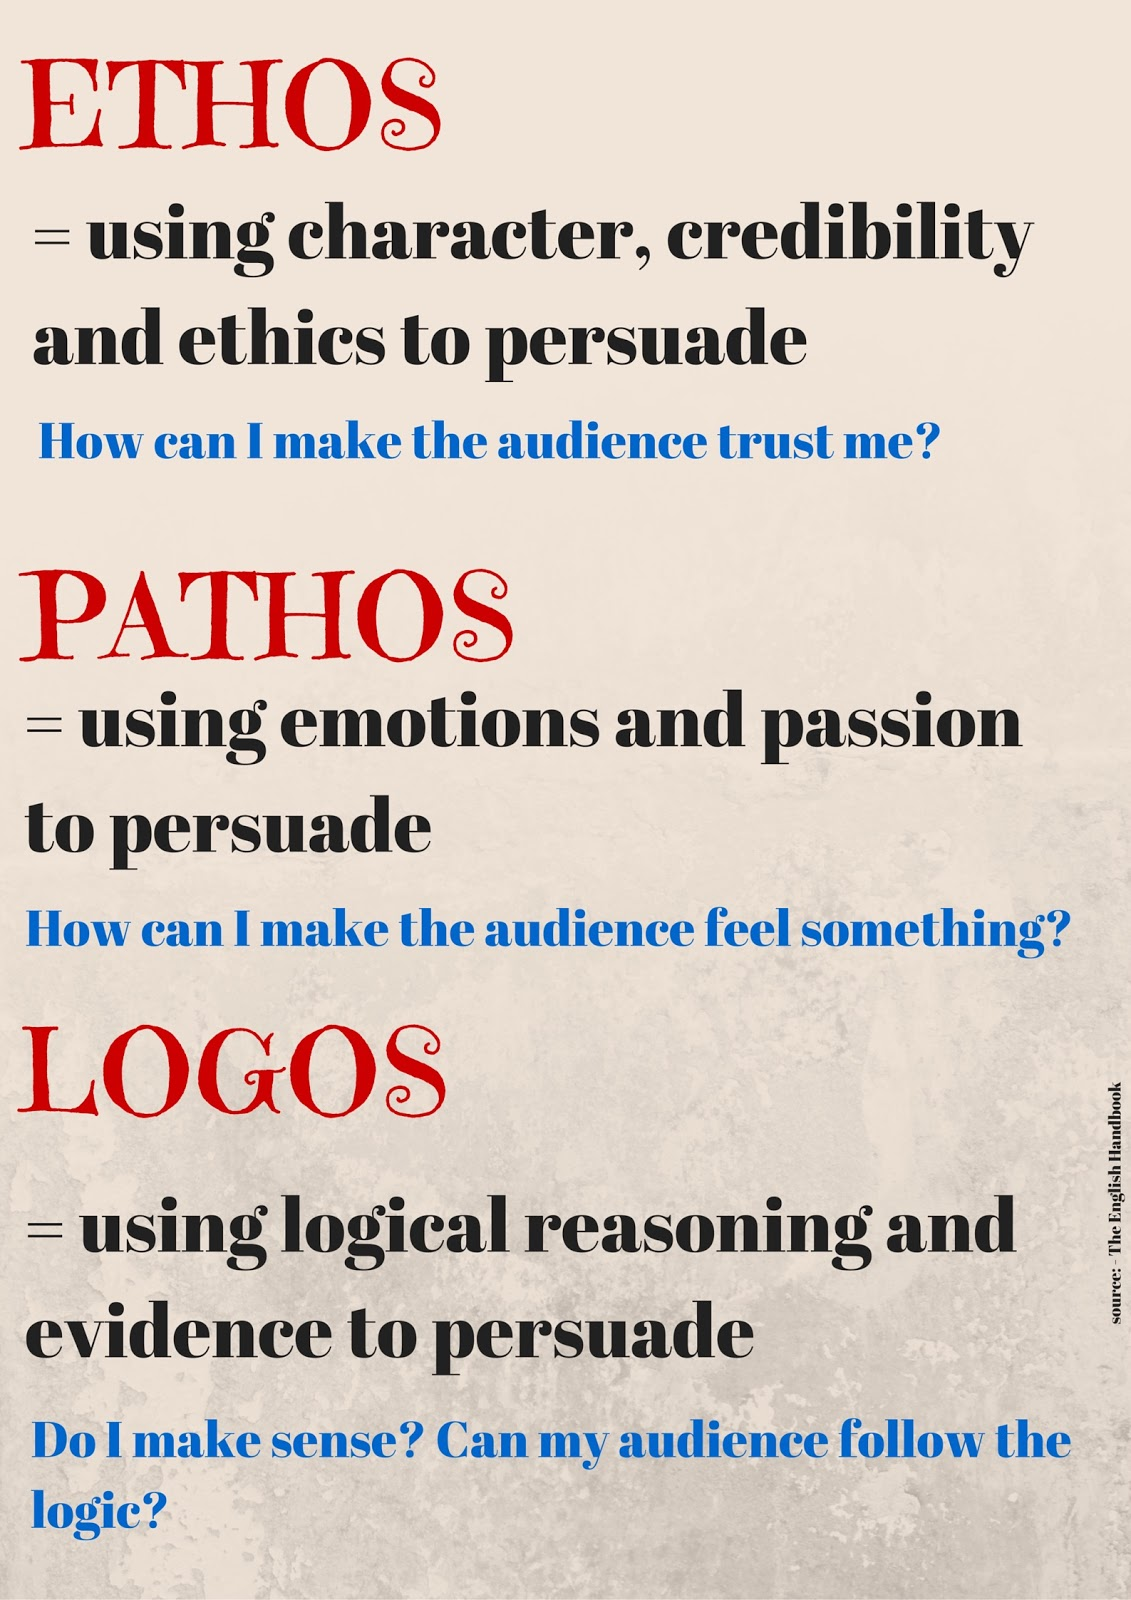 ethos pathos logos worksheet laveyla – Ethos Pathos Logos Worksheet